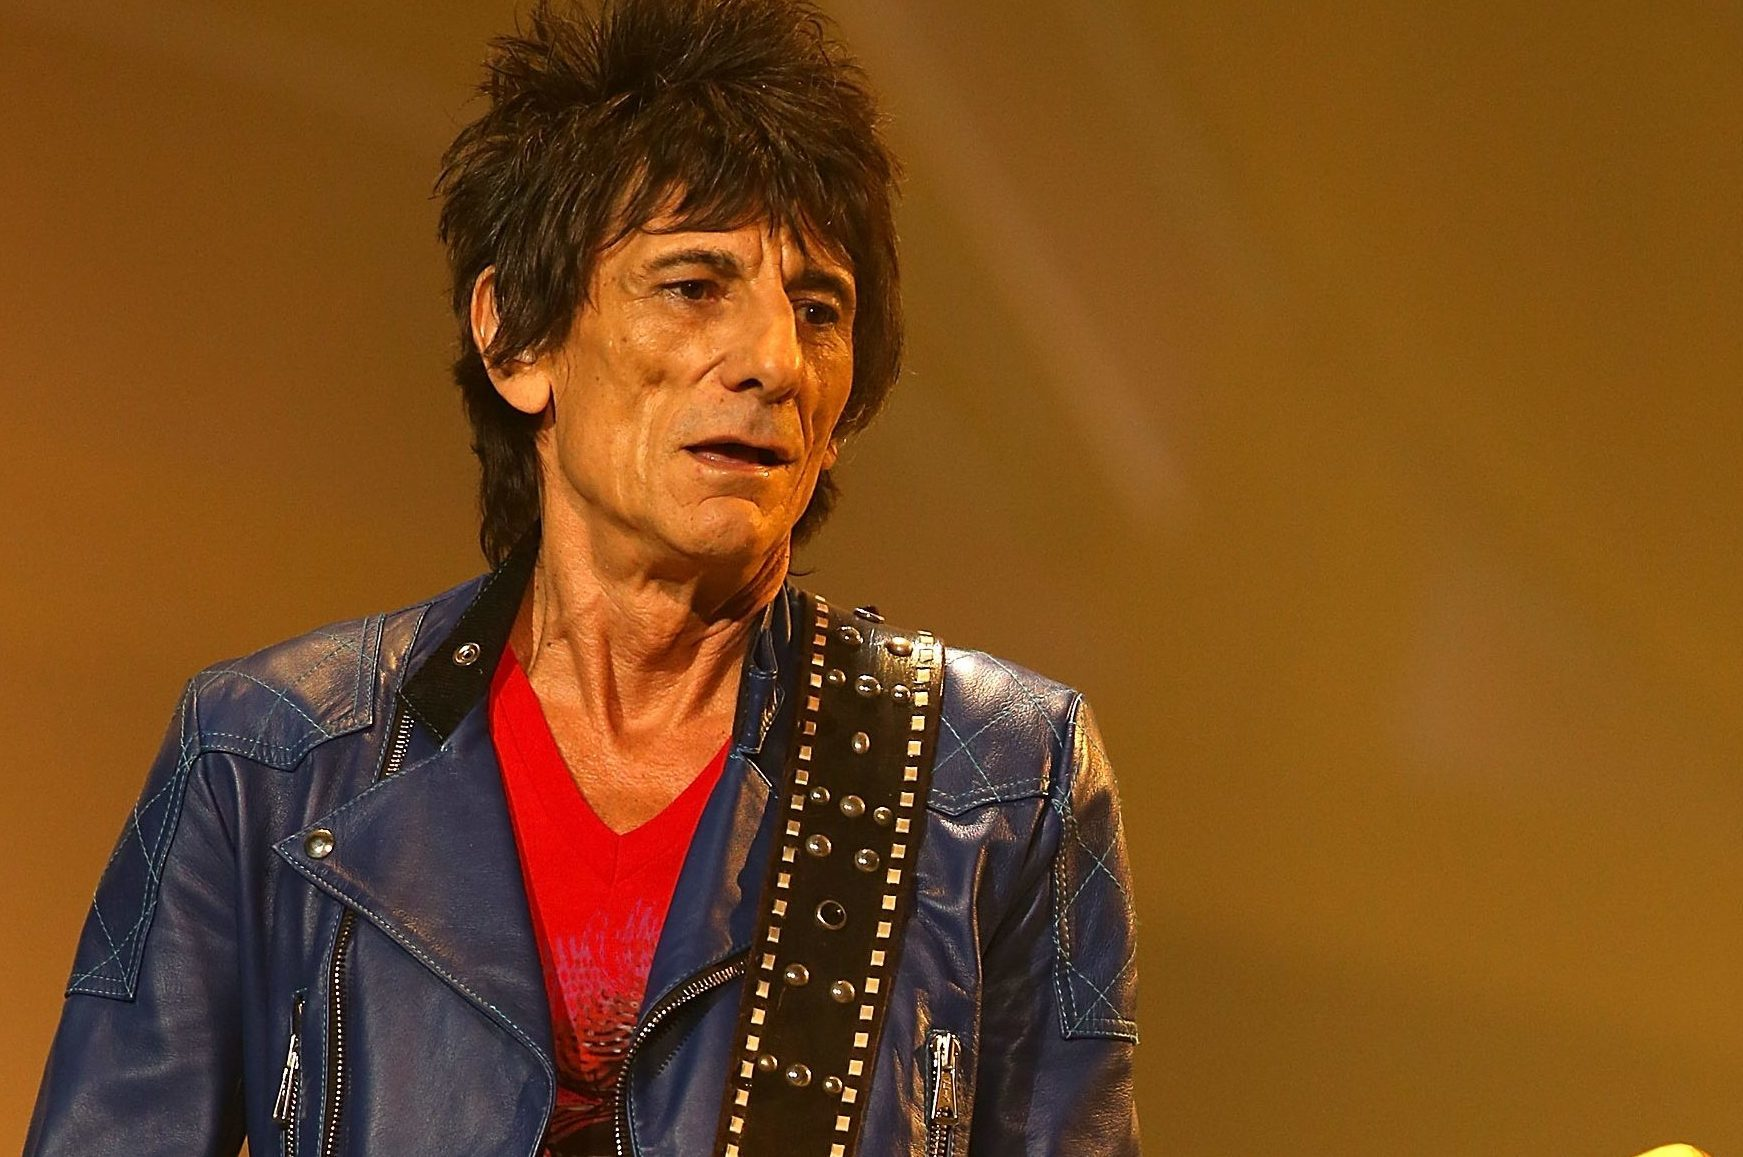 Rolling Stone Ronnie Wood, who became a father again at 69, could be storing up health problems if the survey is to be believed.